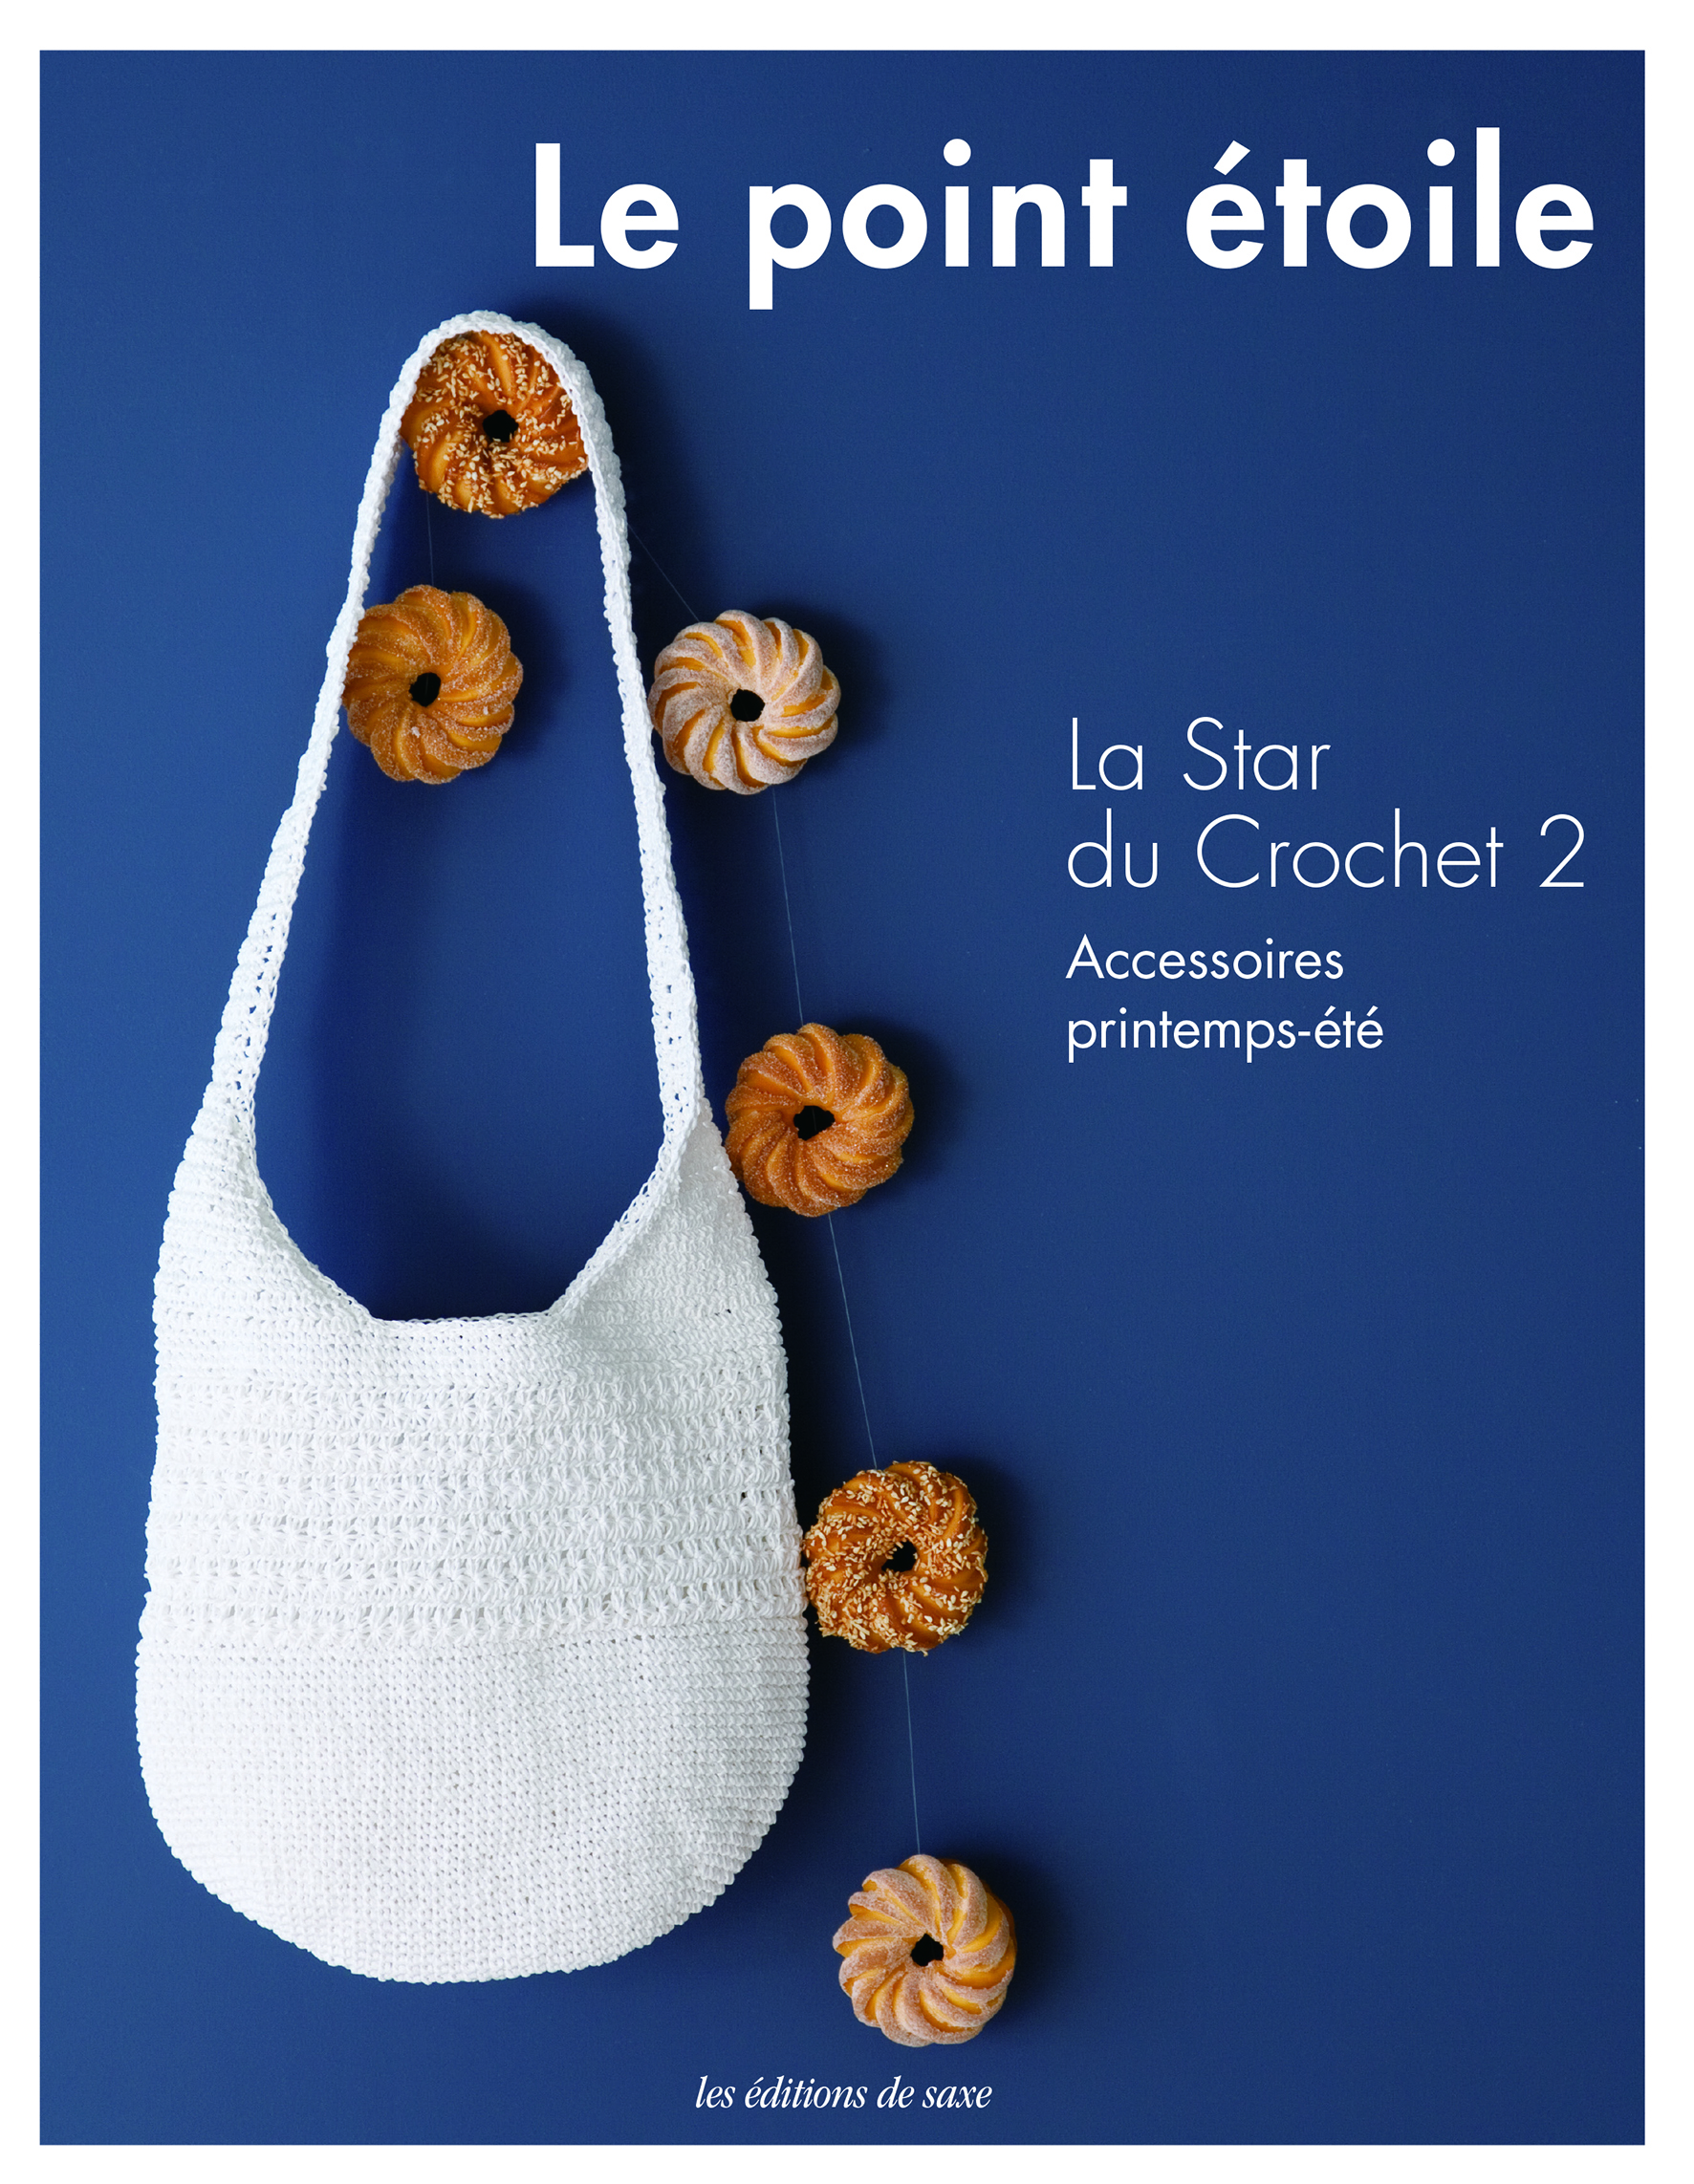 LE POINT ETOILE : LA STAR DU CROCHET 2